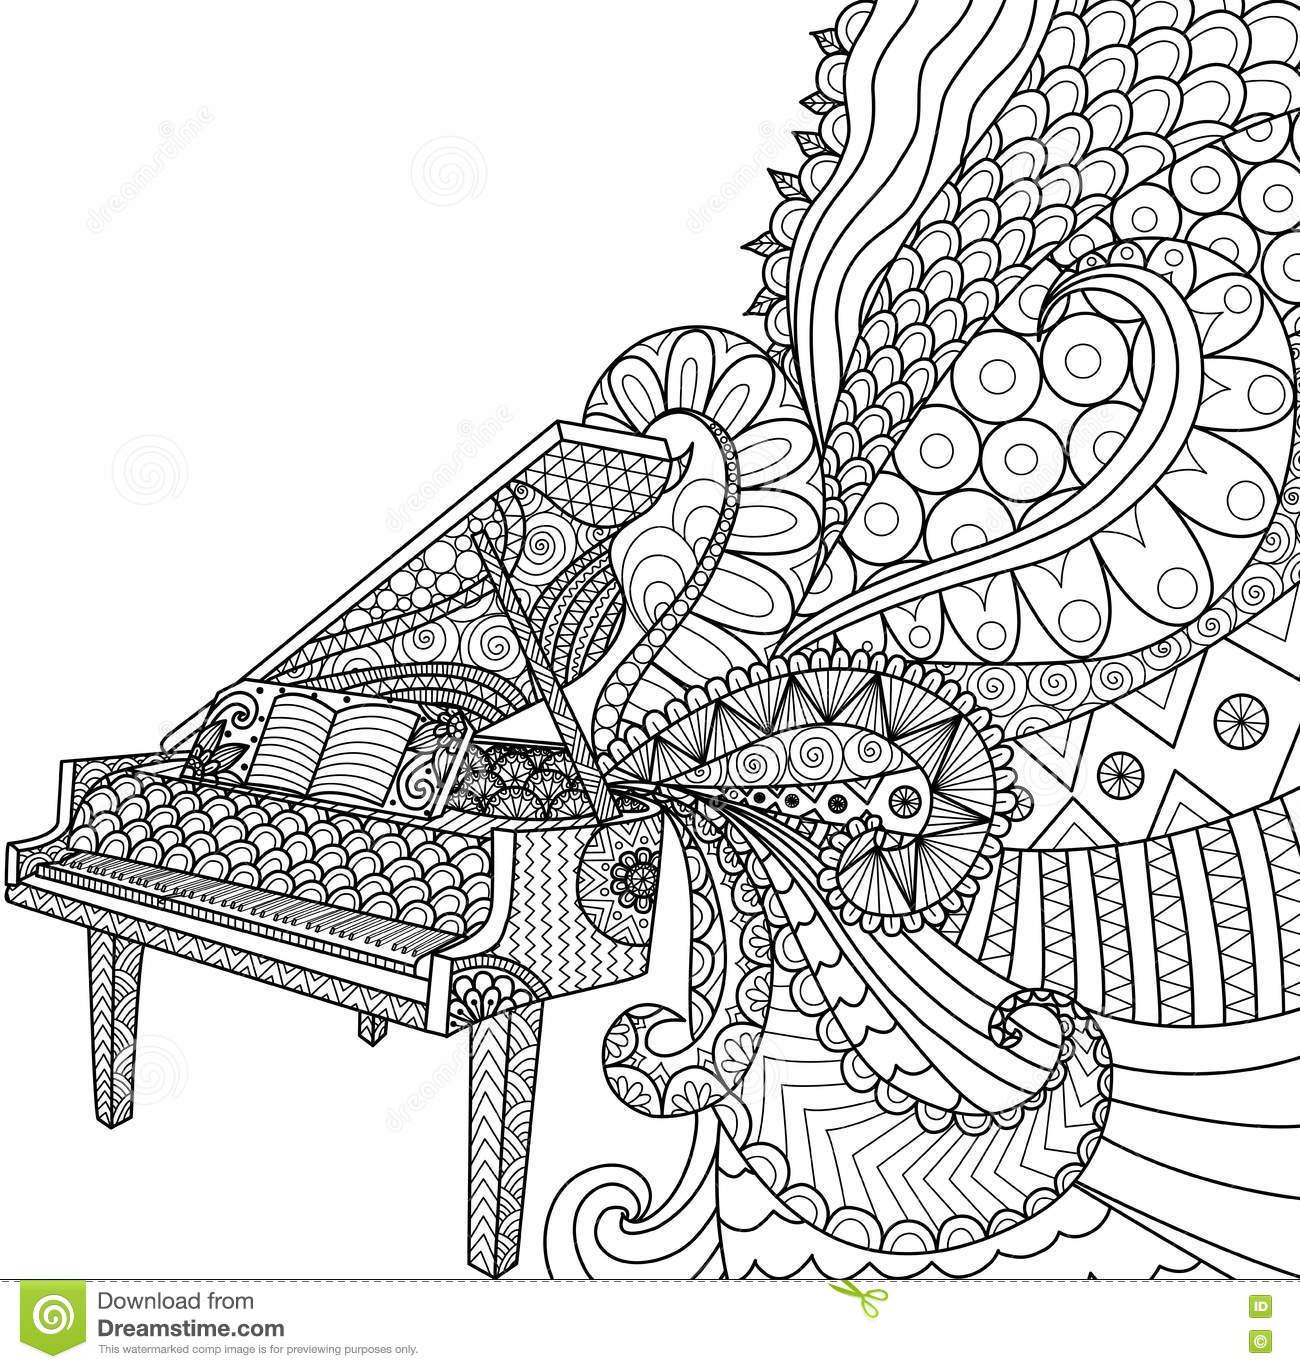 Doodles Design Of Piano For Coloring Book For Adult Poster Cards Design Element T Shirt